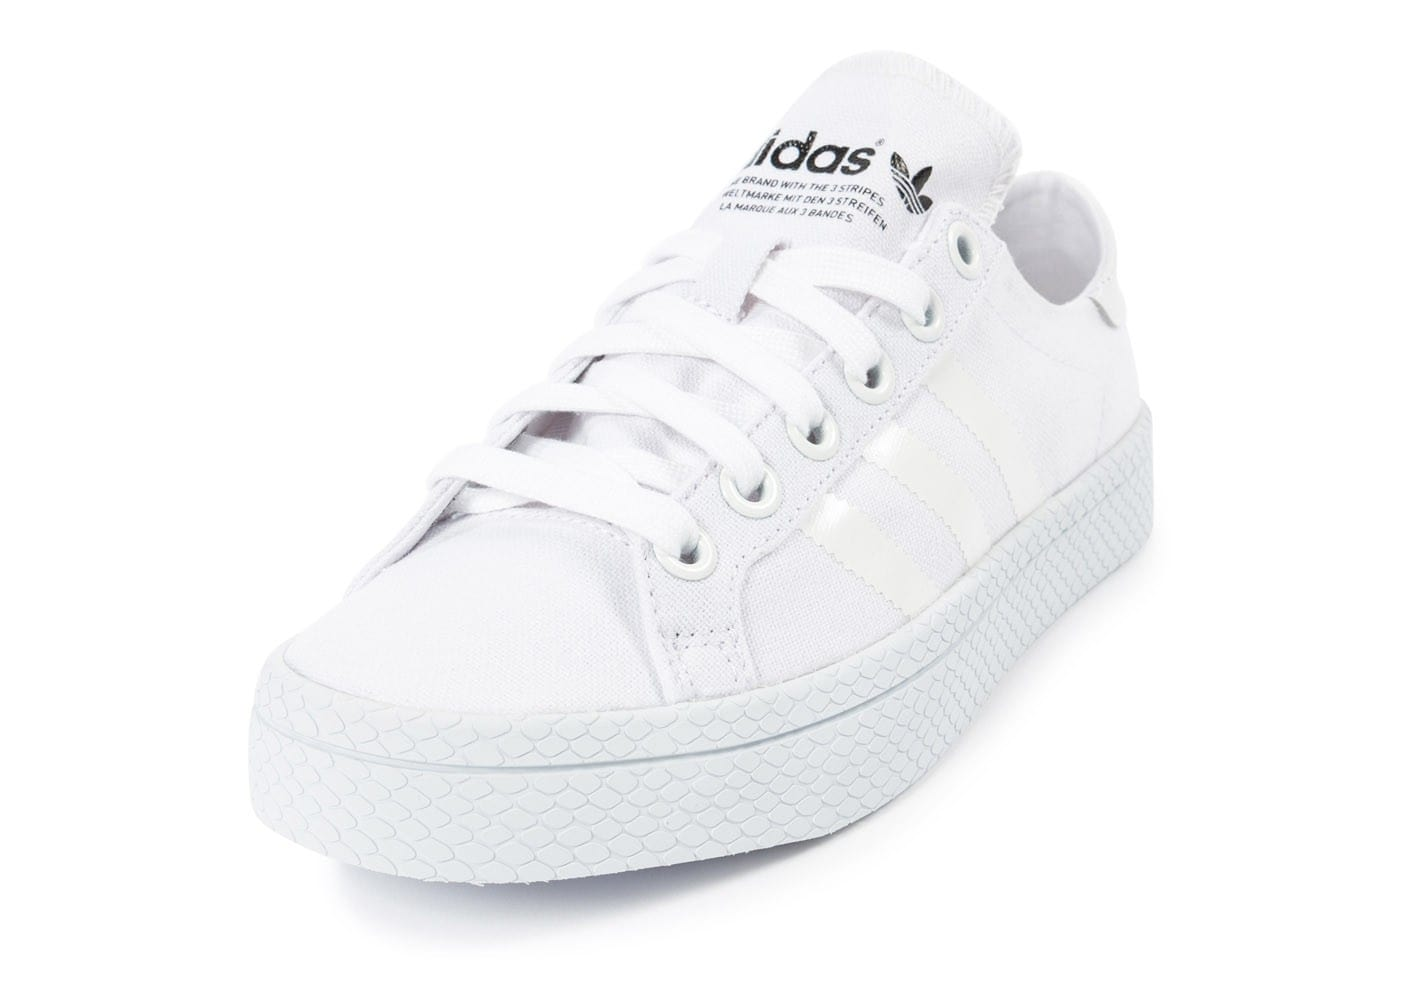 Adidas Chaussures Vantage Blanche Court Chausport odCBrxe